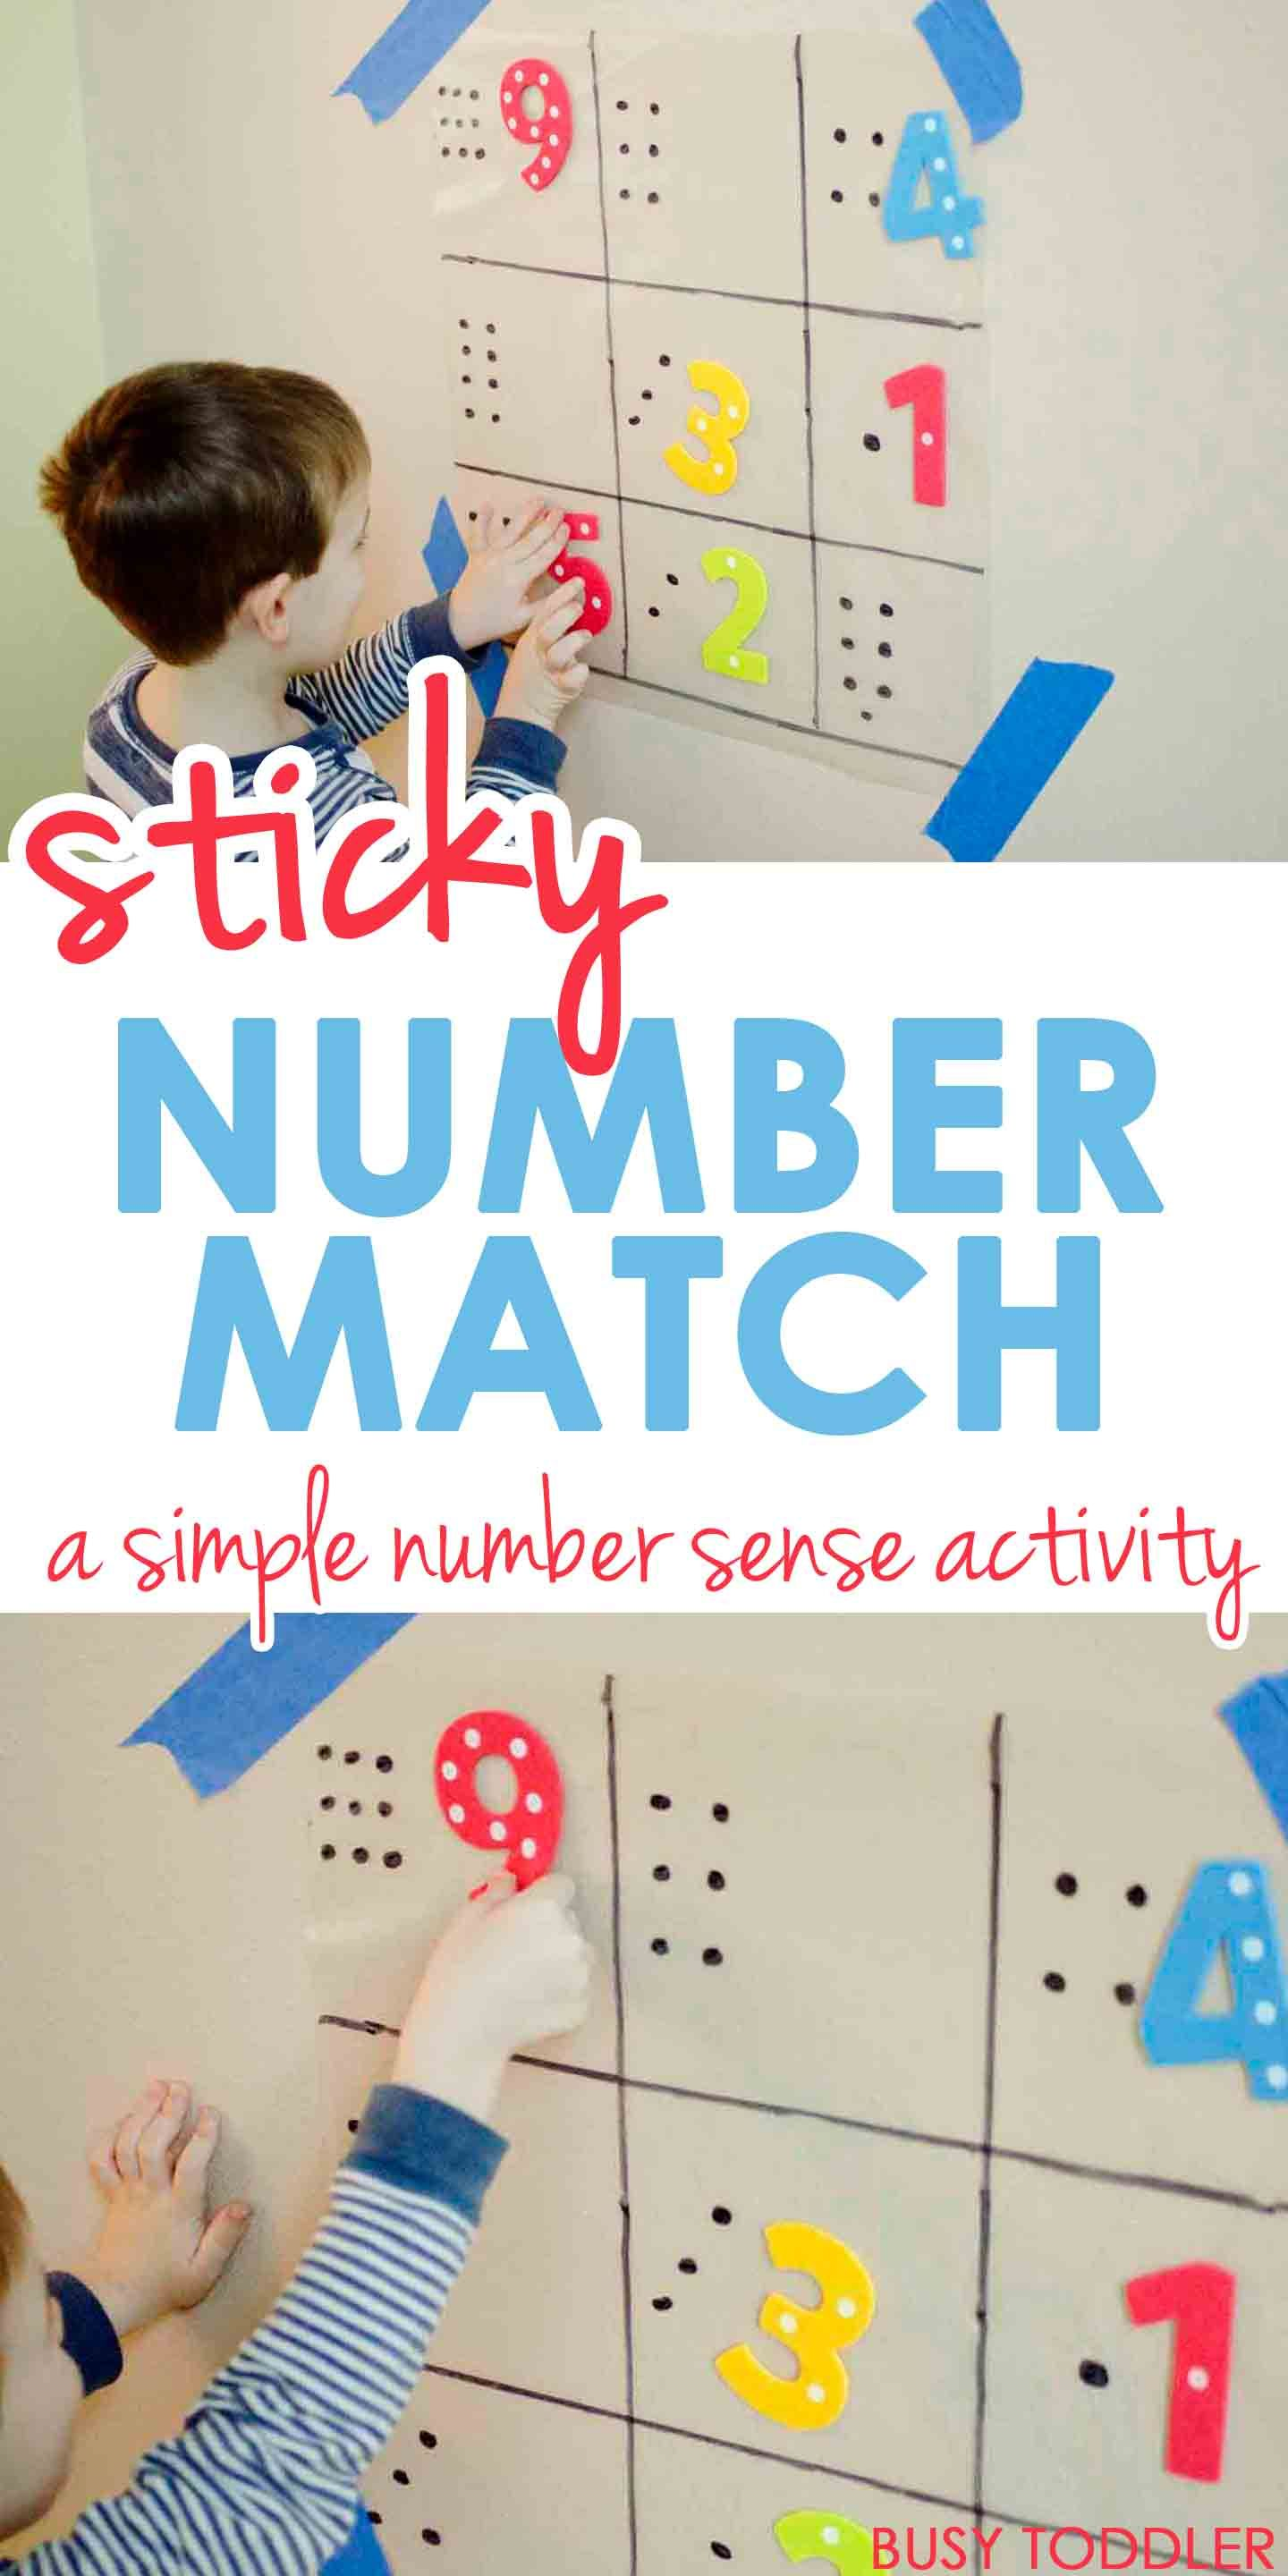 Sticky Number Match Count, Mathematics and Preschool